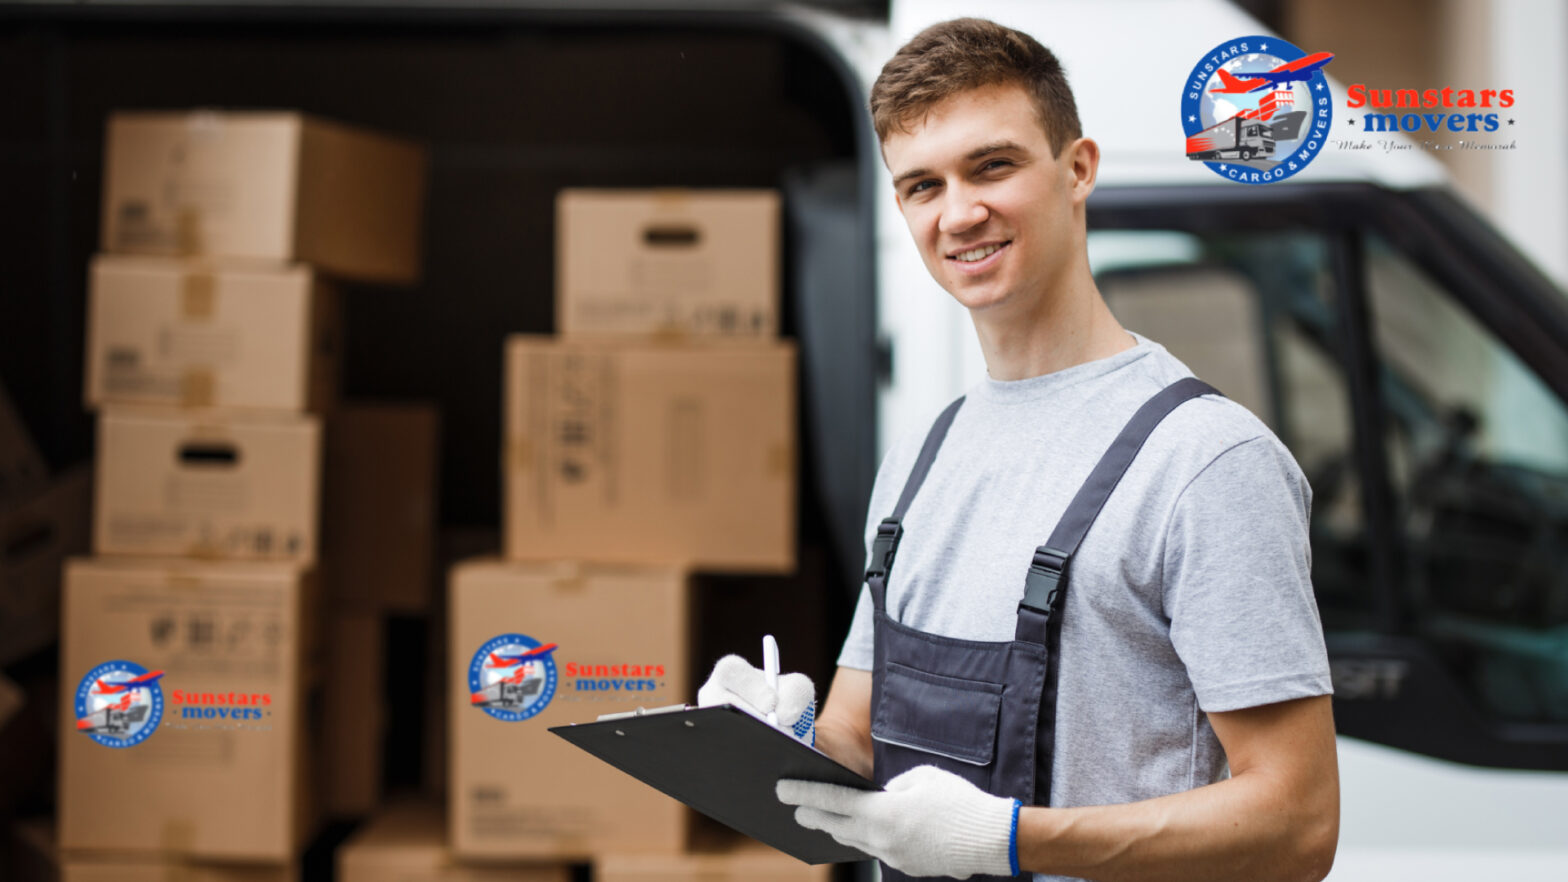 Best furniture movers in Dubai at sunstars movers